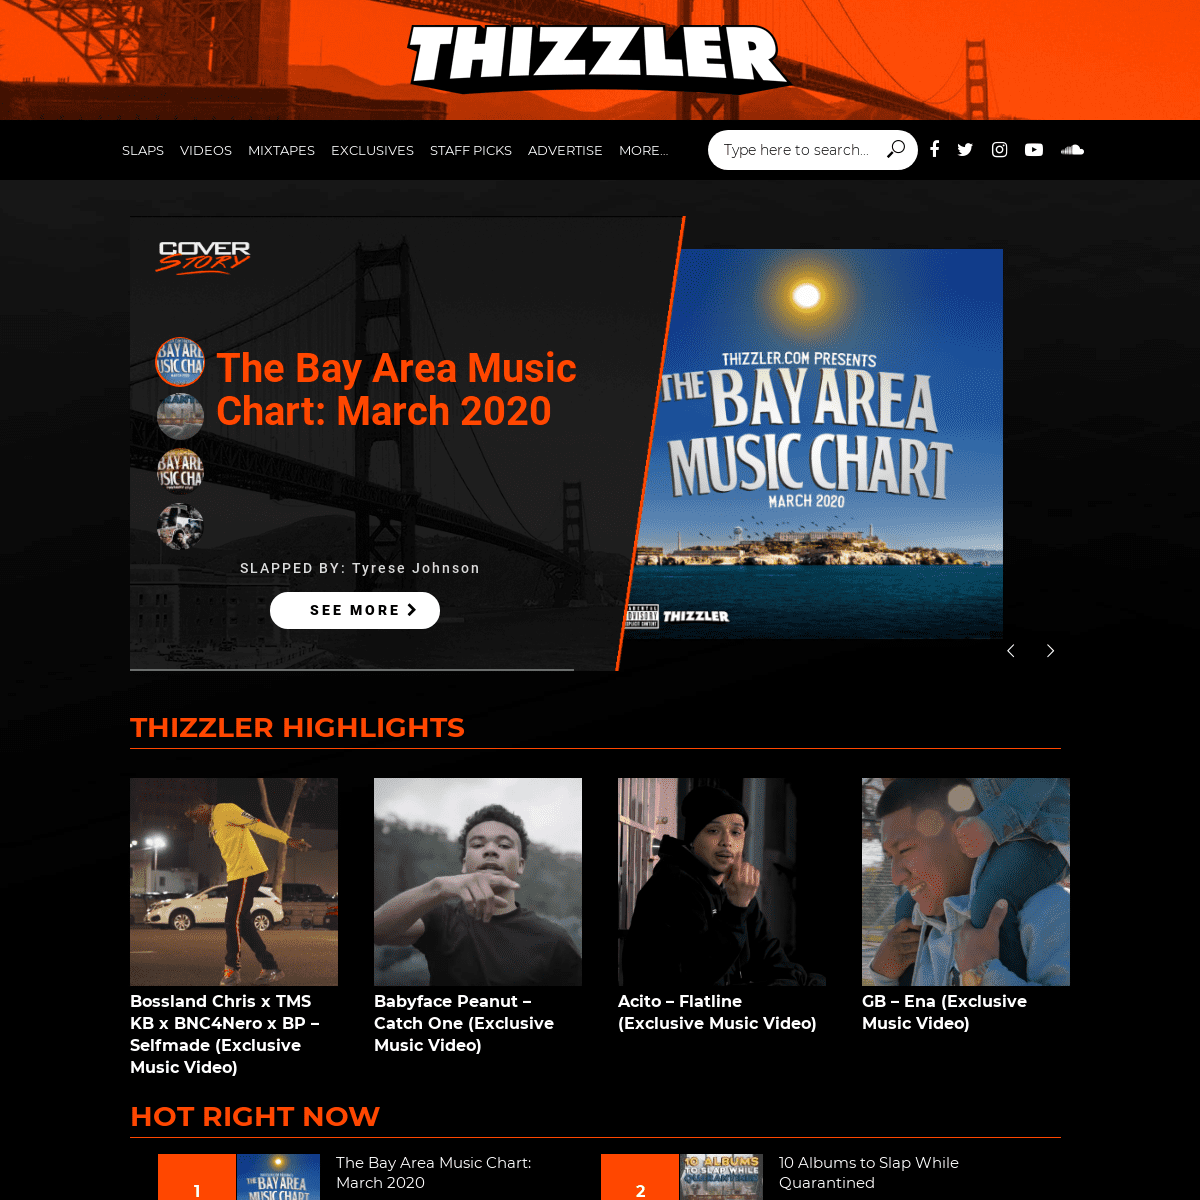 ArchiveBay.com - thizzler.com - Thizzler On The Roof - The official home for Bay Area music